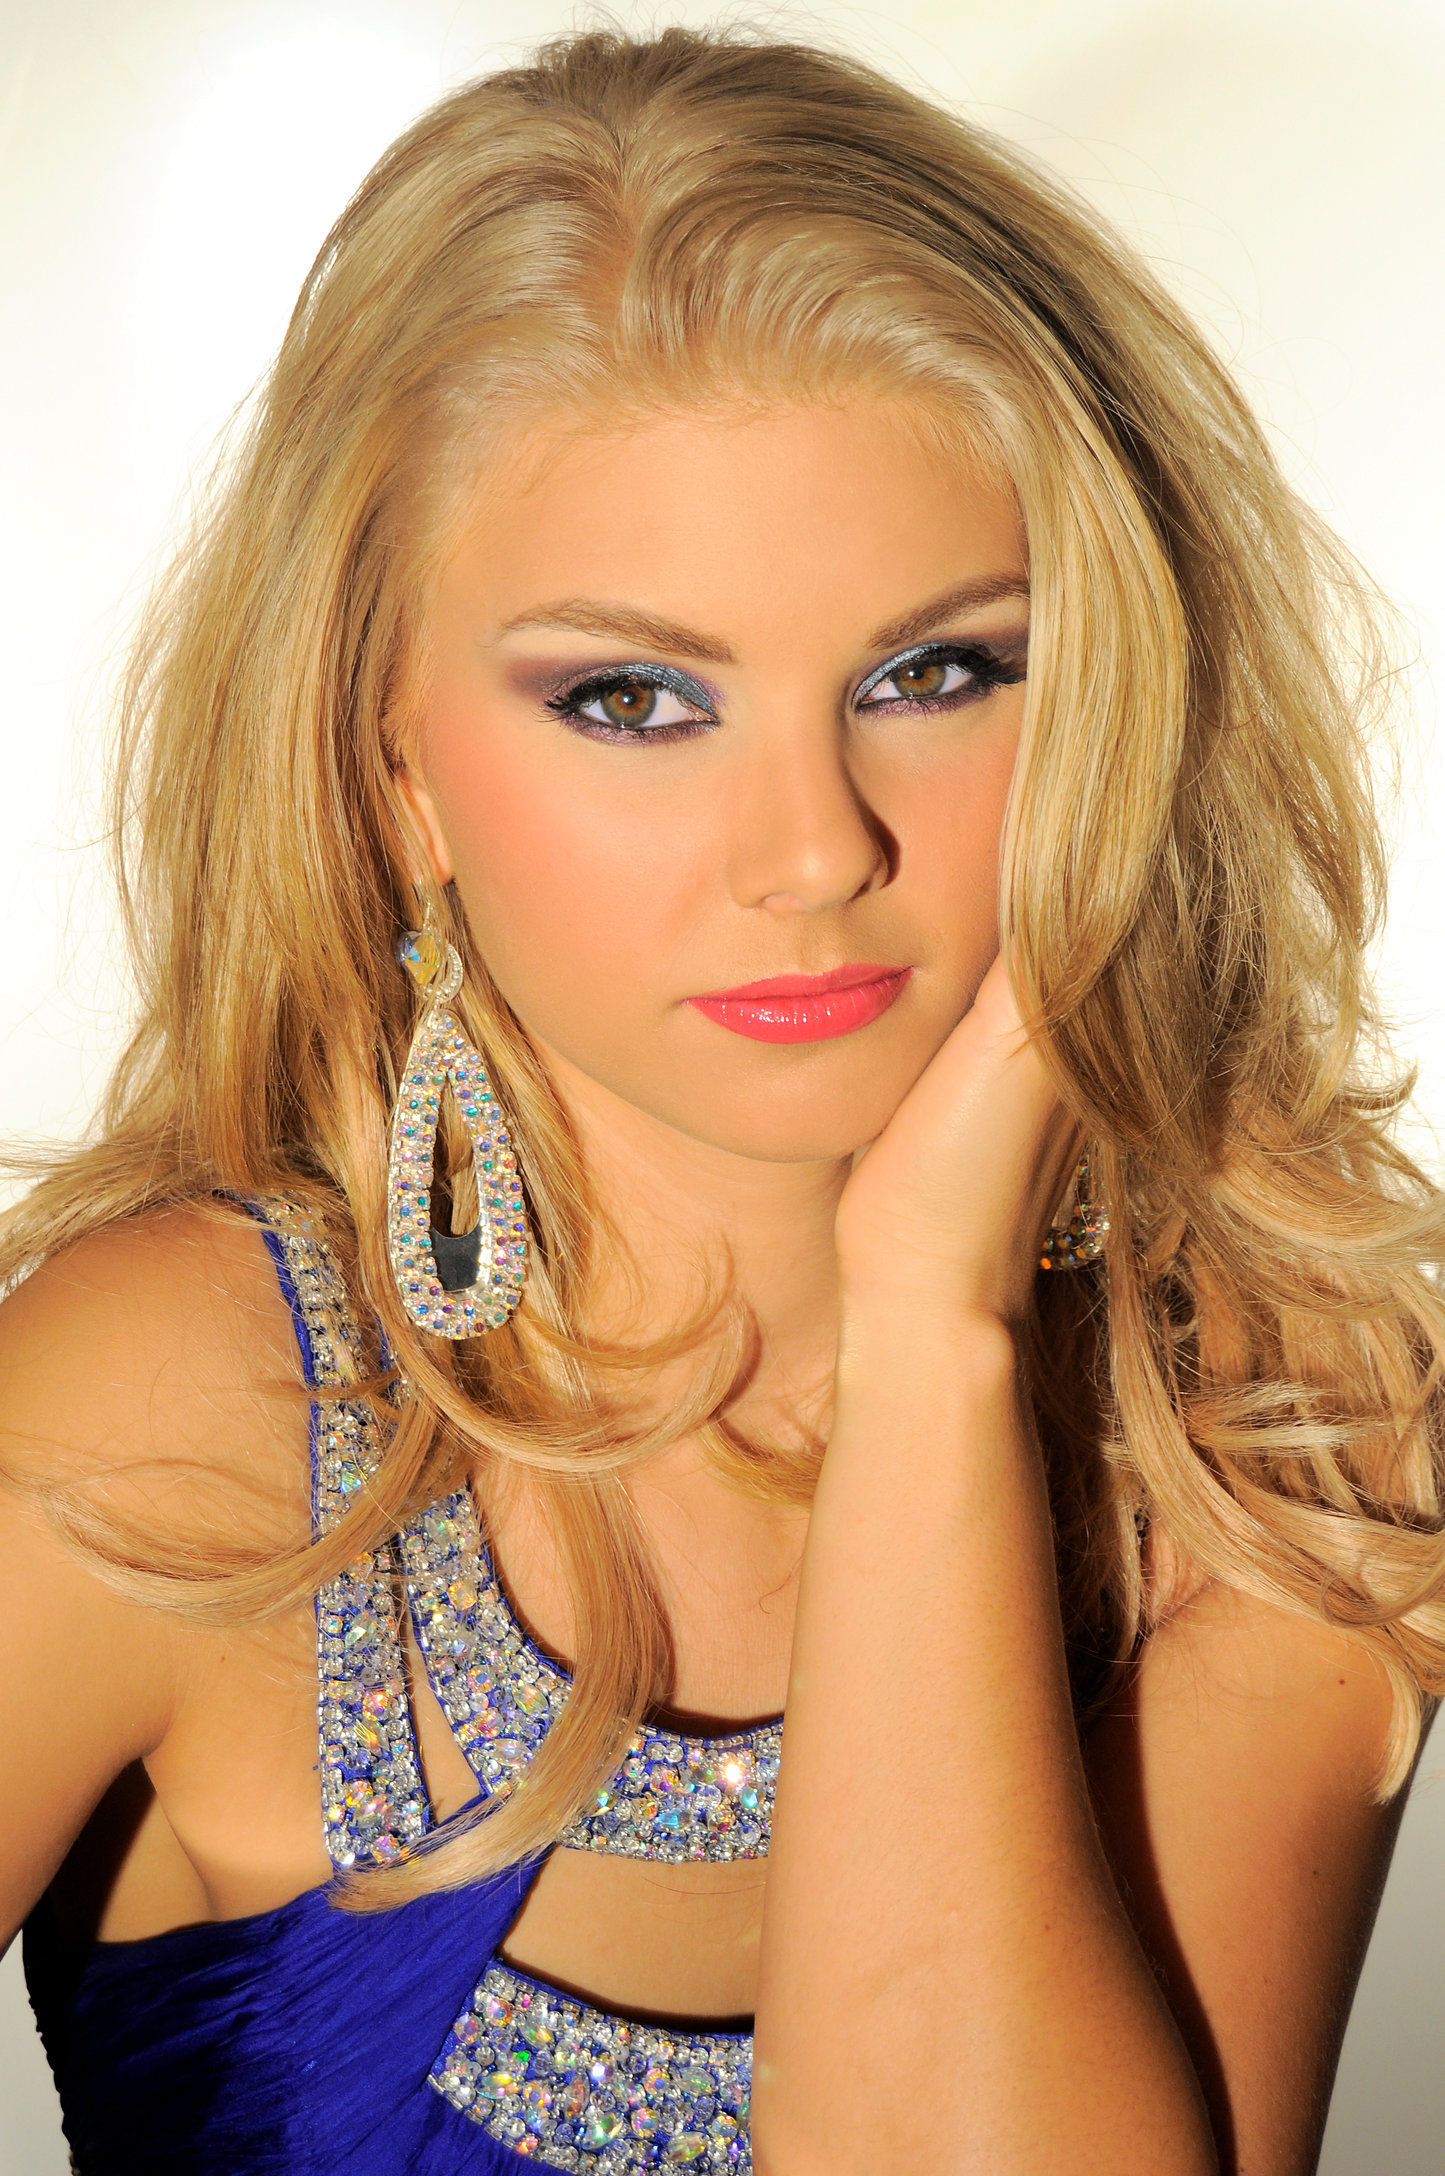 """3""""SILVER TEARDROP HOOPS WITH AB STONES worn by ALI ROGERS, MISS SOUTH CAROLINA"""